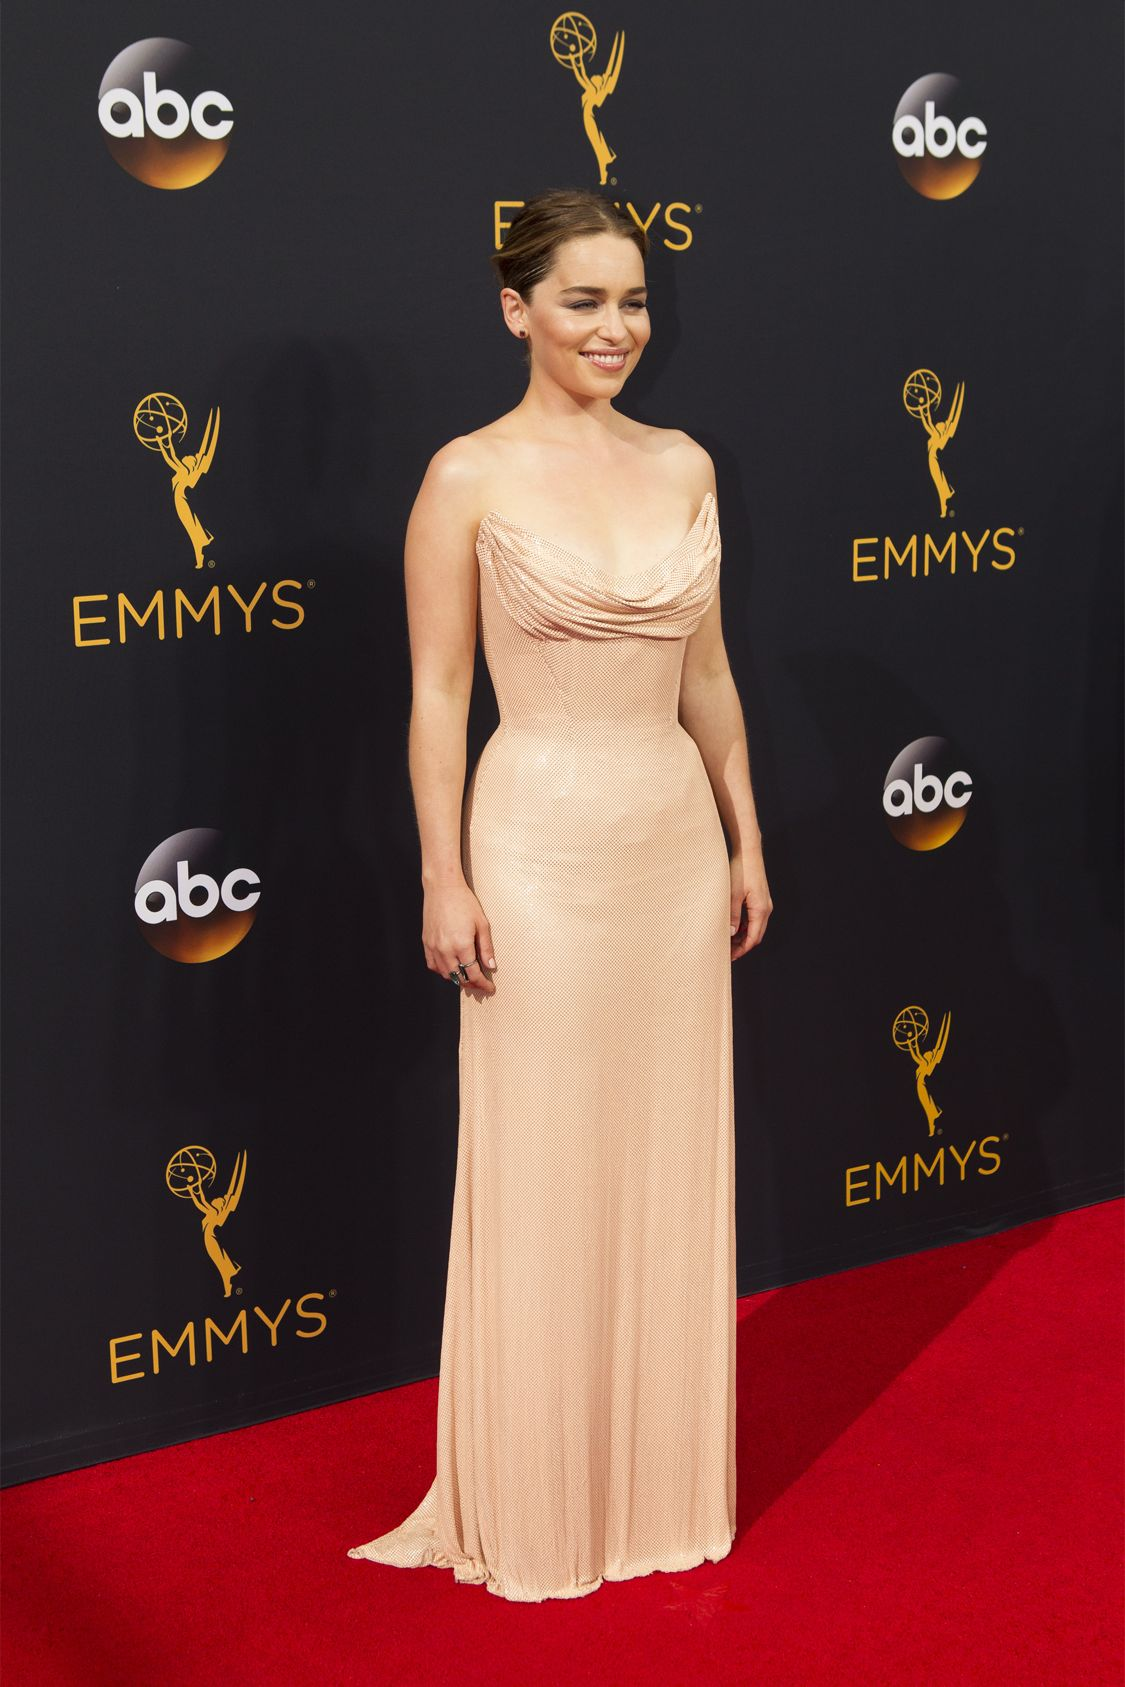 """THE 68TH EMMY(r) AWARDS - """"The 68th Emmy Awards"""" broadcasts live from The Microsoft Theater in Los Angeles, Sunday, September 18 (7:00-11:00 p.m. EDT/4:00-8:00 p.m. PDT), on ABC and is hosted by Jimmy Kimmel. (ABC/Rick Rowell) EMILIA CLARKE"""